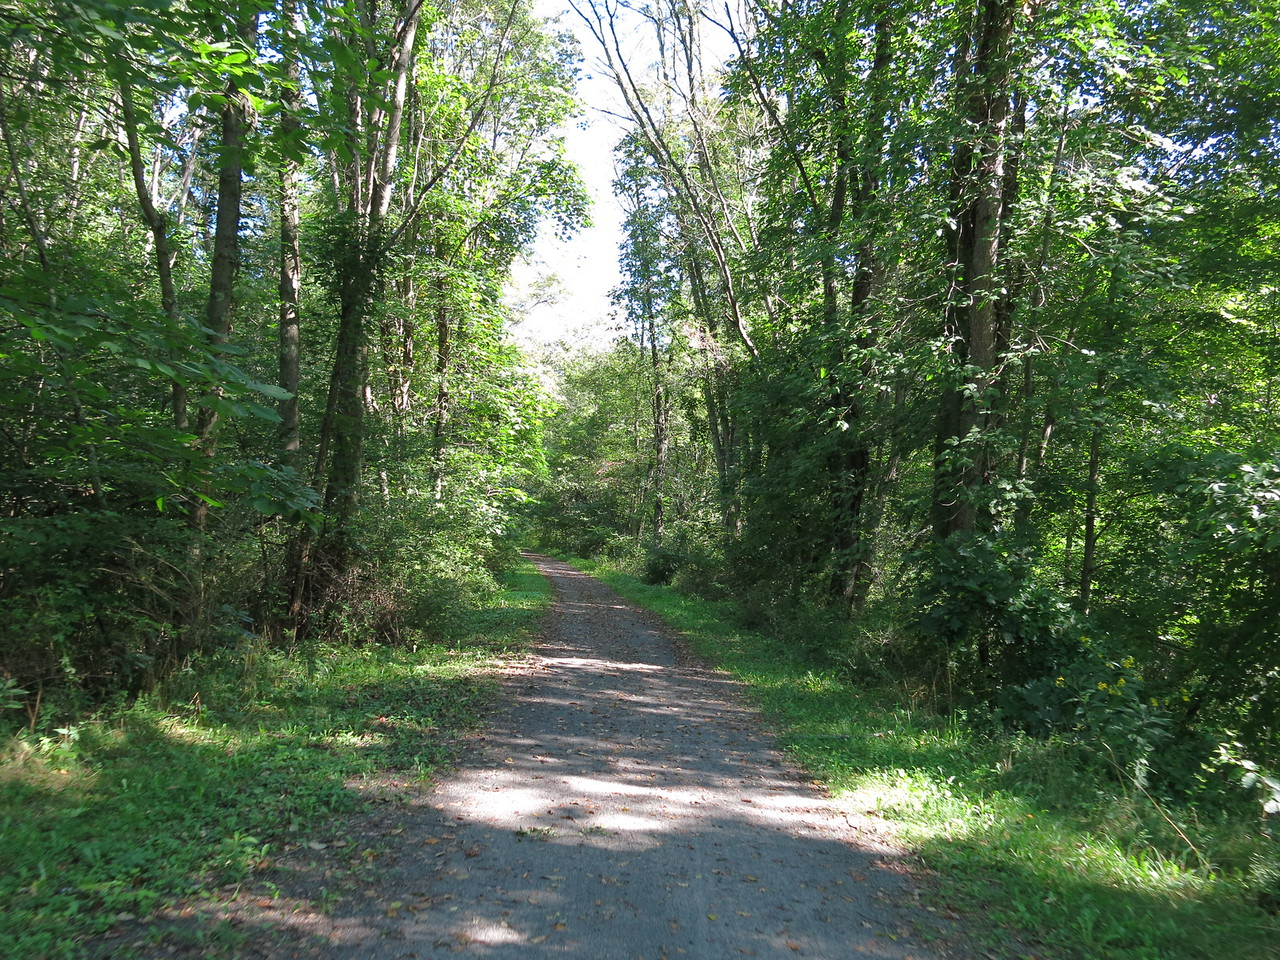 The trail heading south from Confluence towards Rockwood